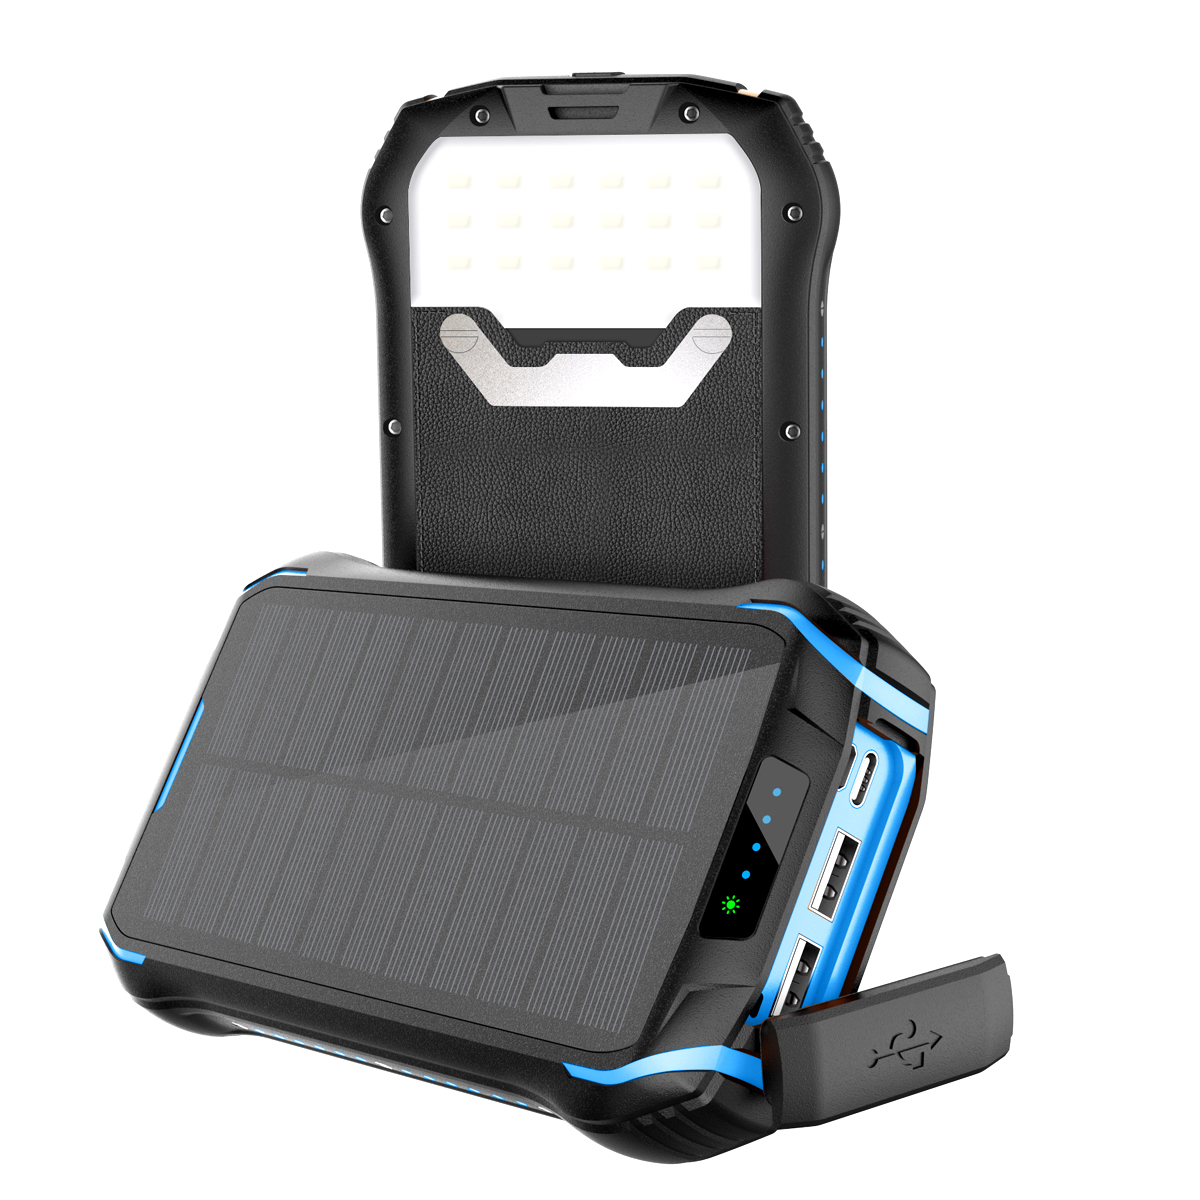 Amazon New Arrival 18W Type <strong>C</strong> Pd Qc 3.0 Power Bank 20000Mah Laptop Solar Charger For Camping